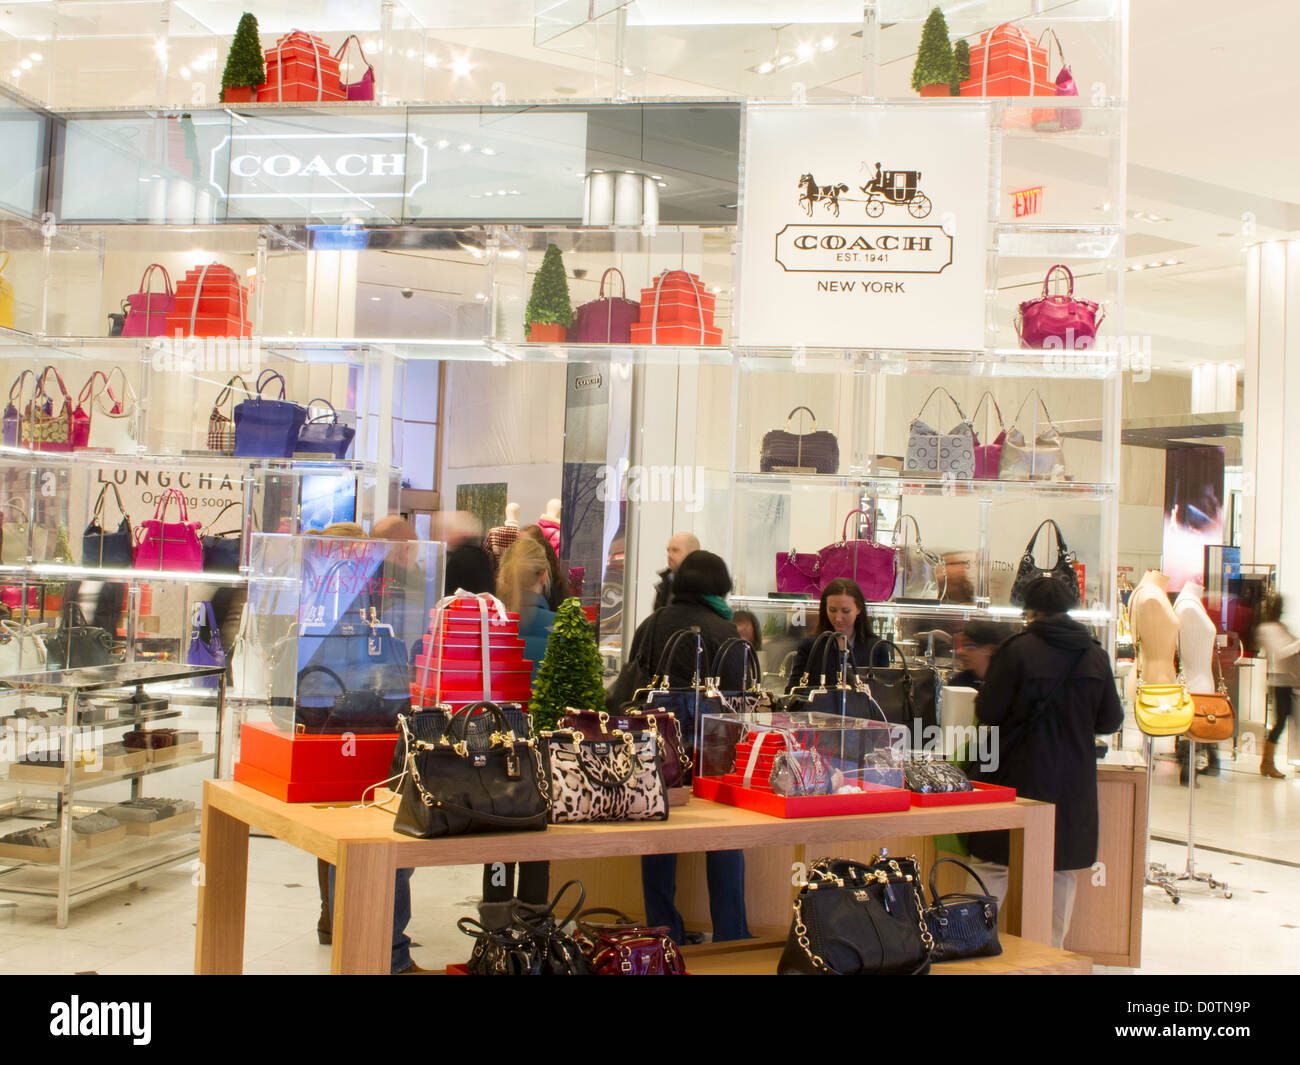 8280ea5a87e0 Coach Store Stock Photos   Coach Store Stock Images - Alamy